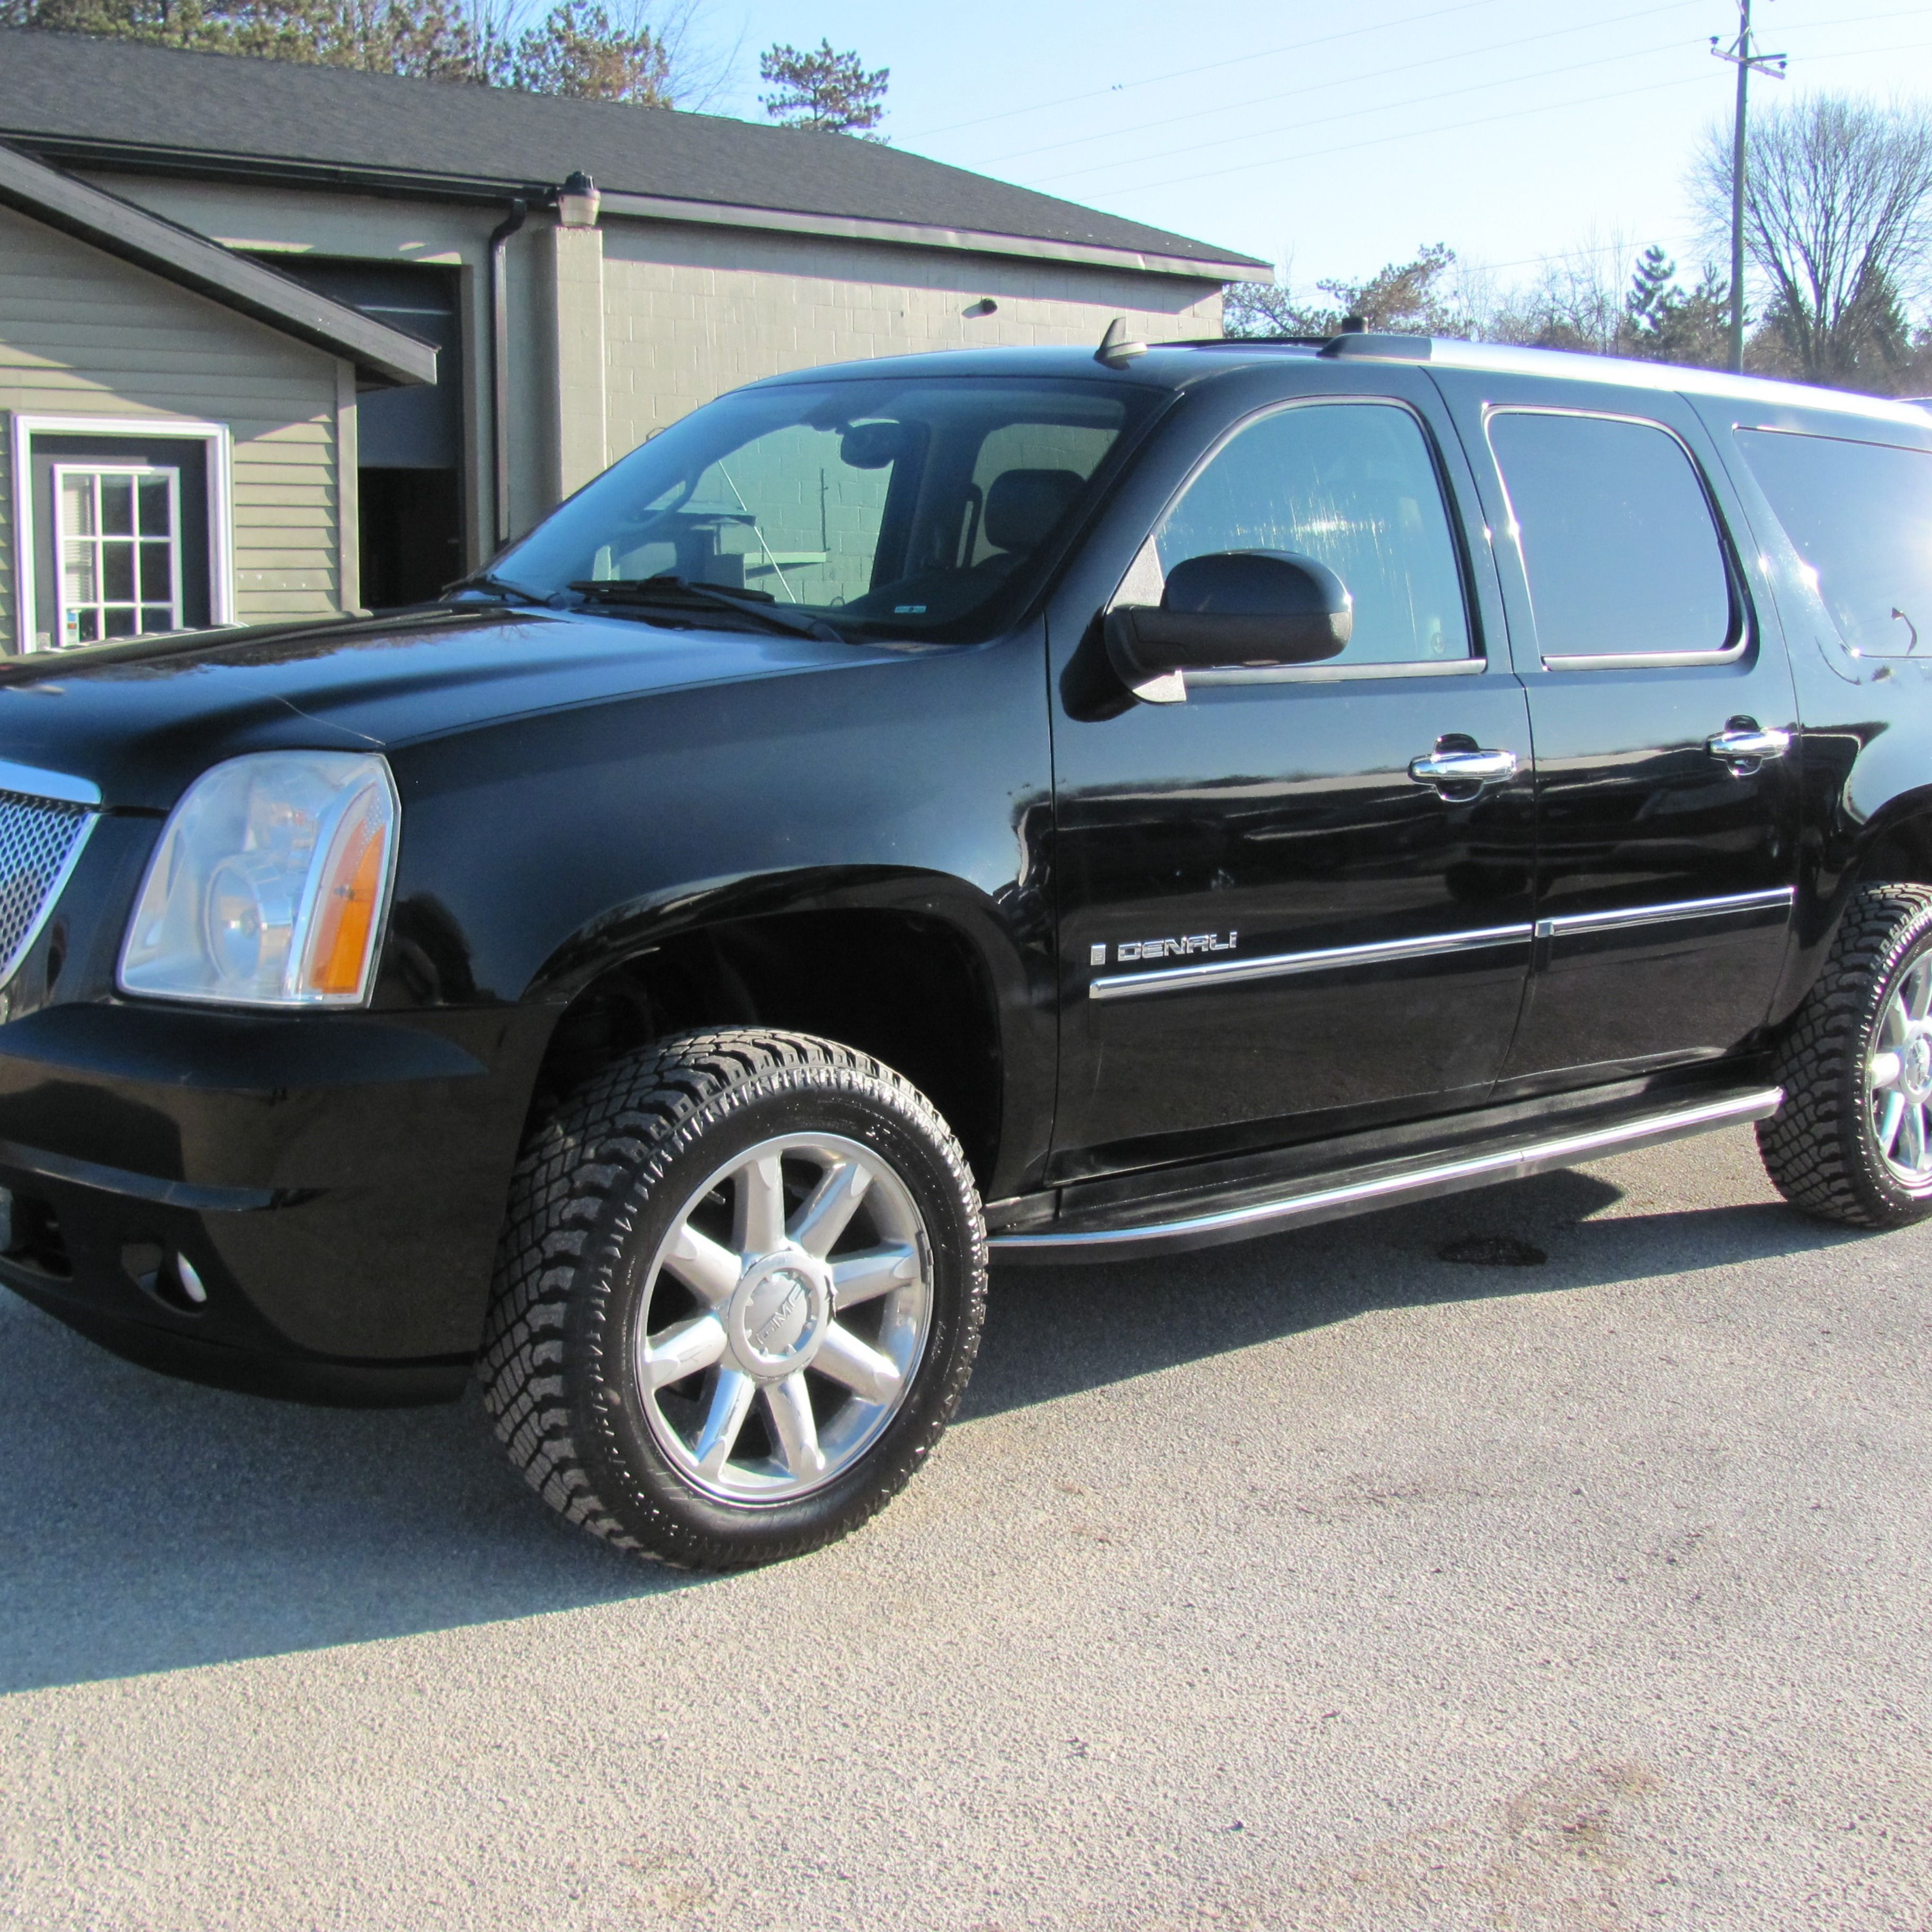 For Sale 16 995 With Images Gmc Yukon Xl Gmc Yukon